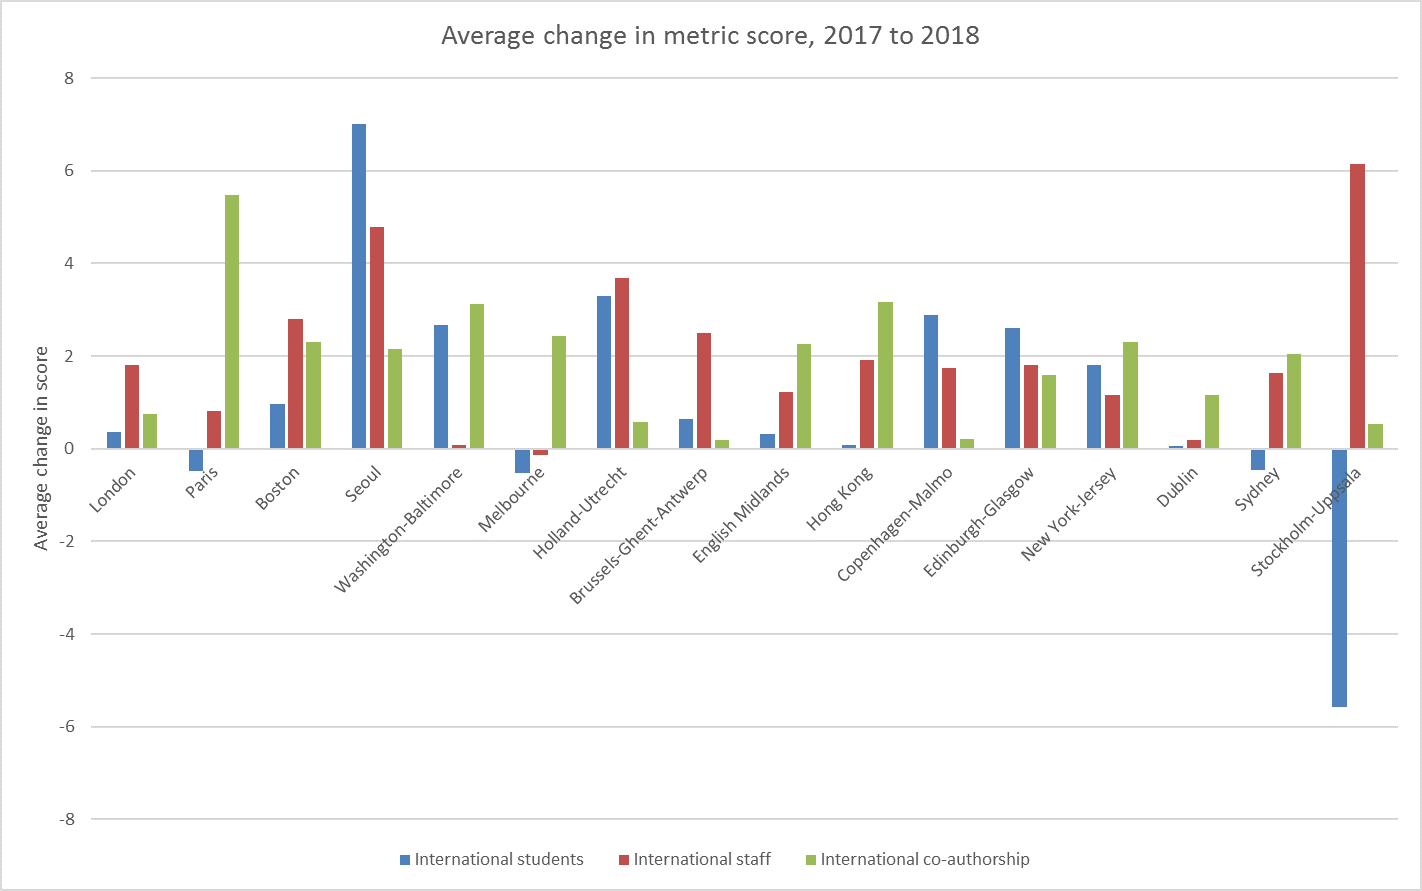 Average change in metric score, 2017 to 2018